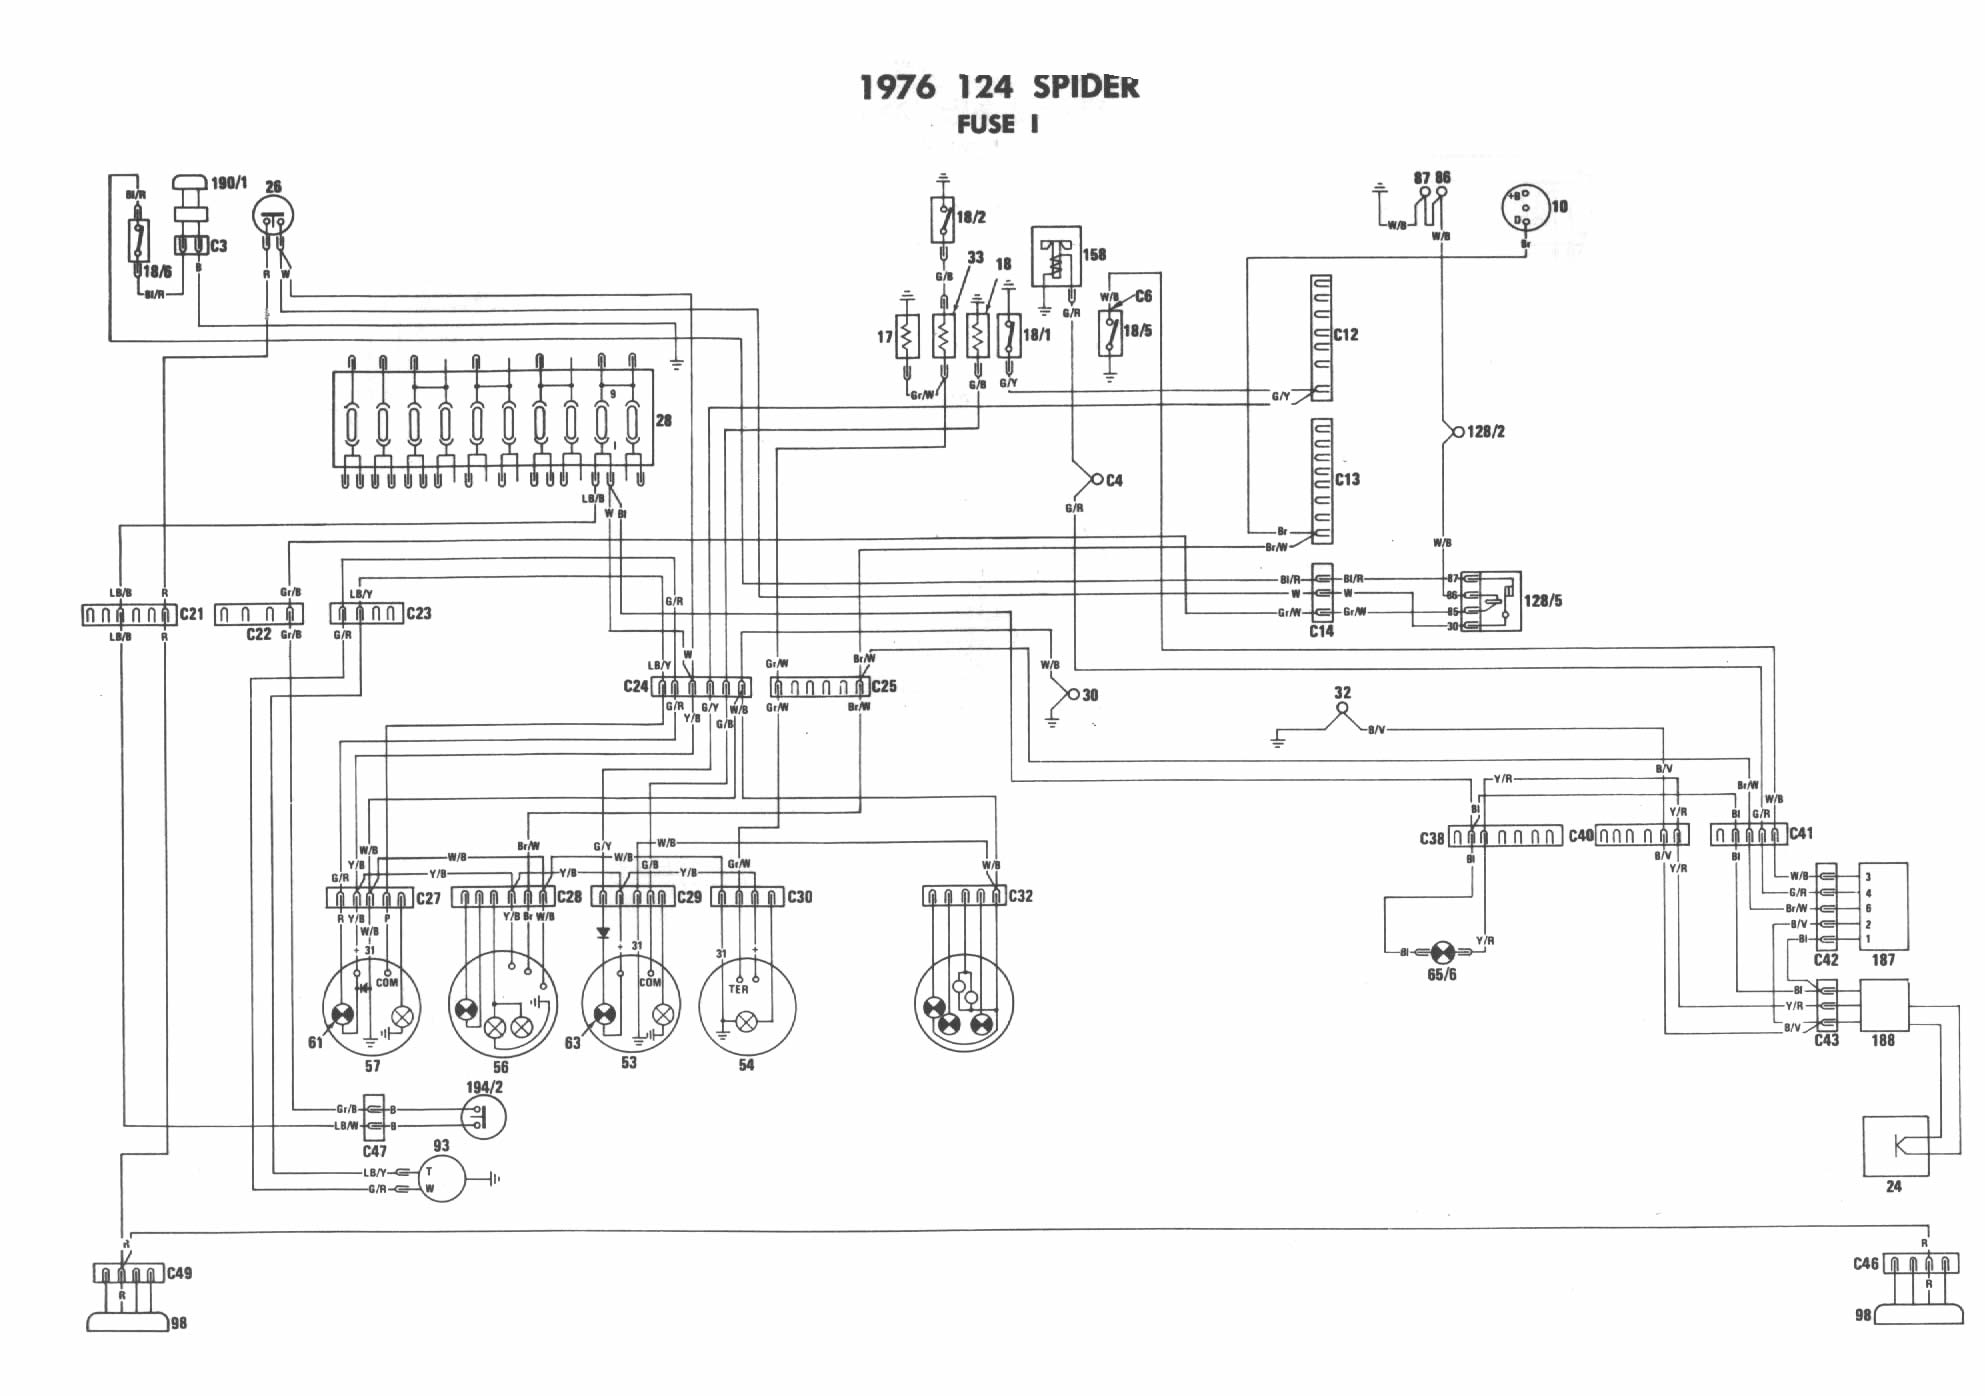 76 Fiat Wiring Diagram - Schematics Online Karmann Ghia Wiring Diagram on